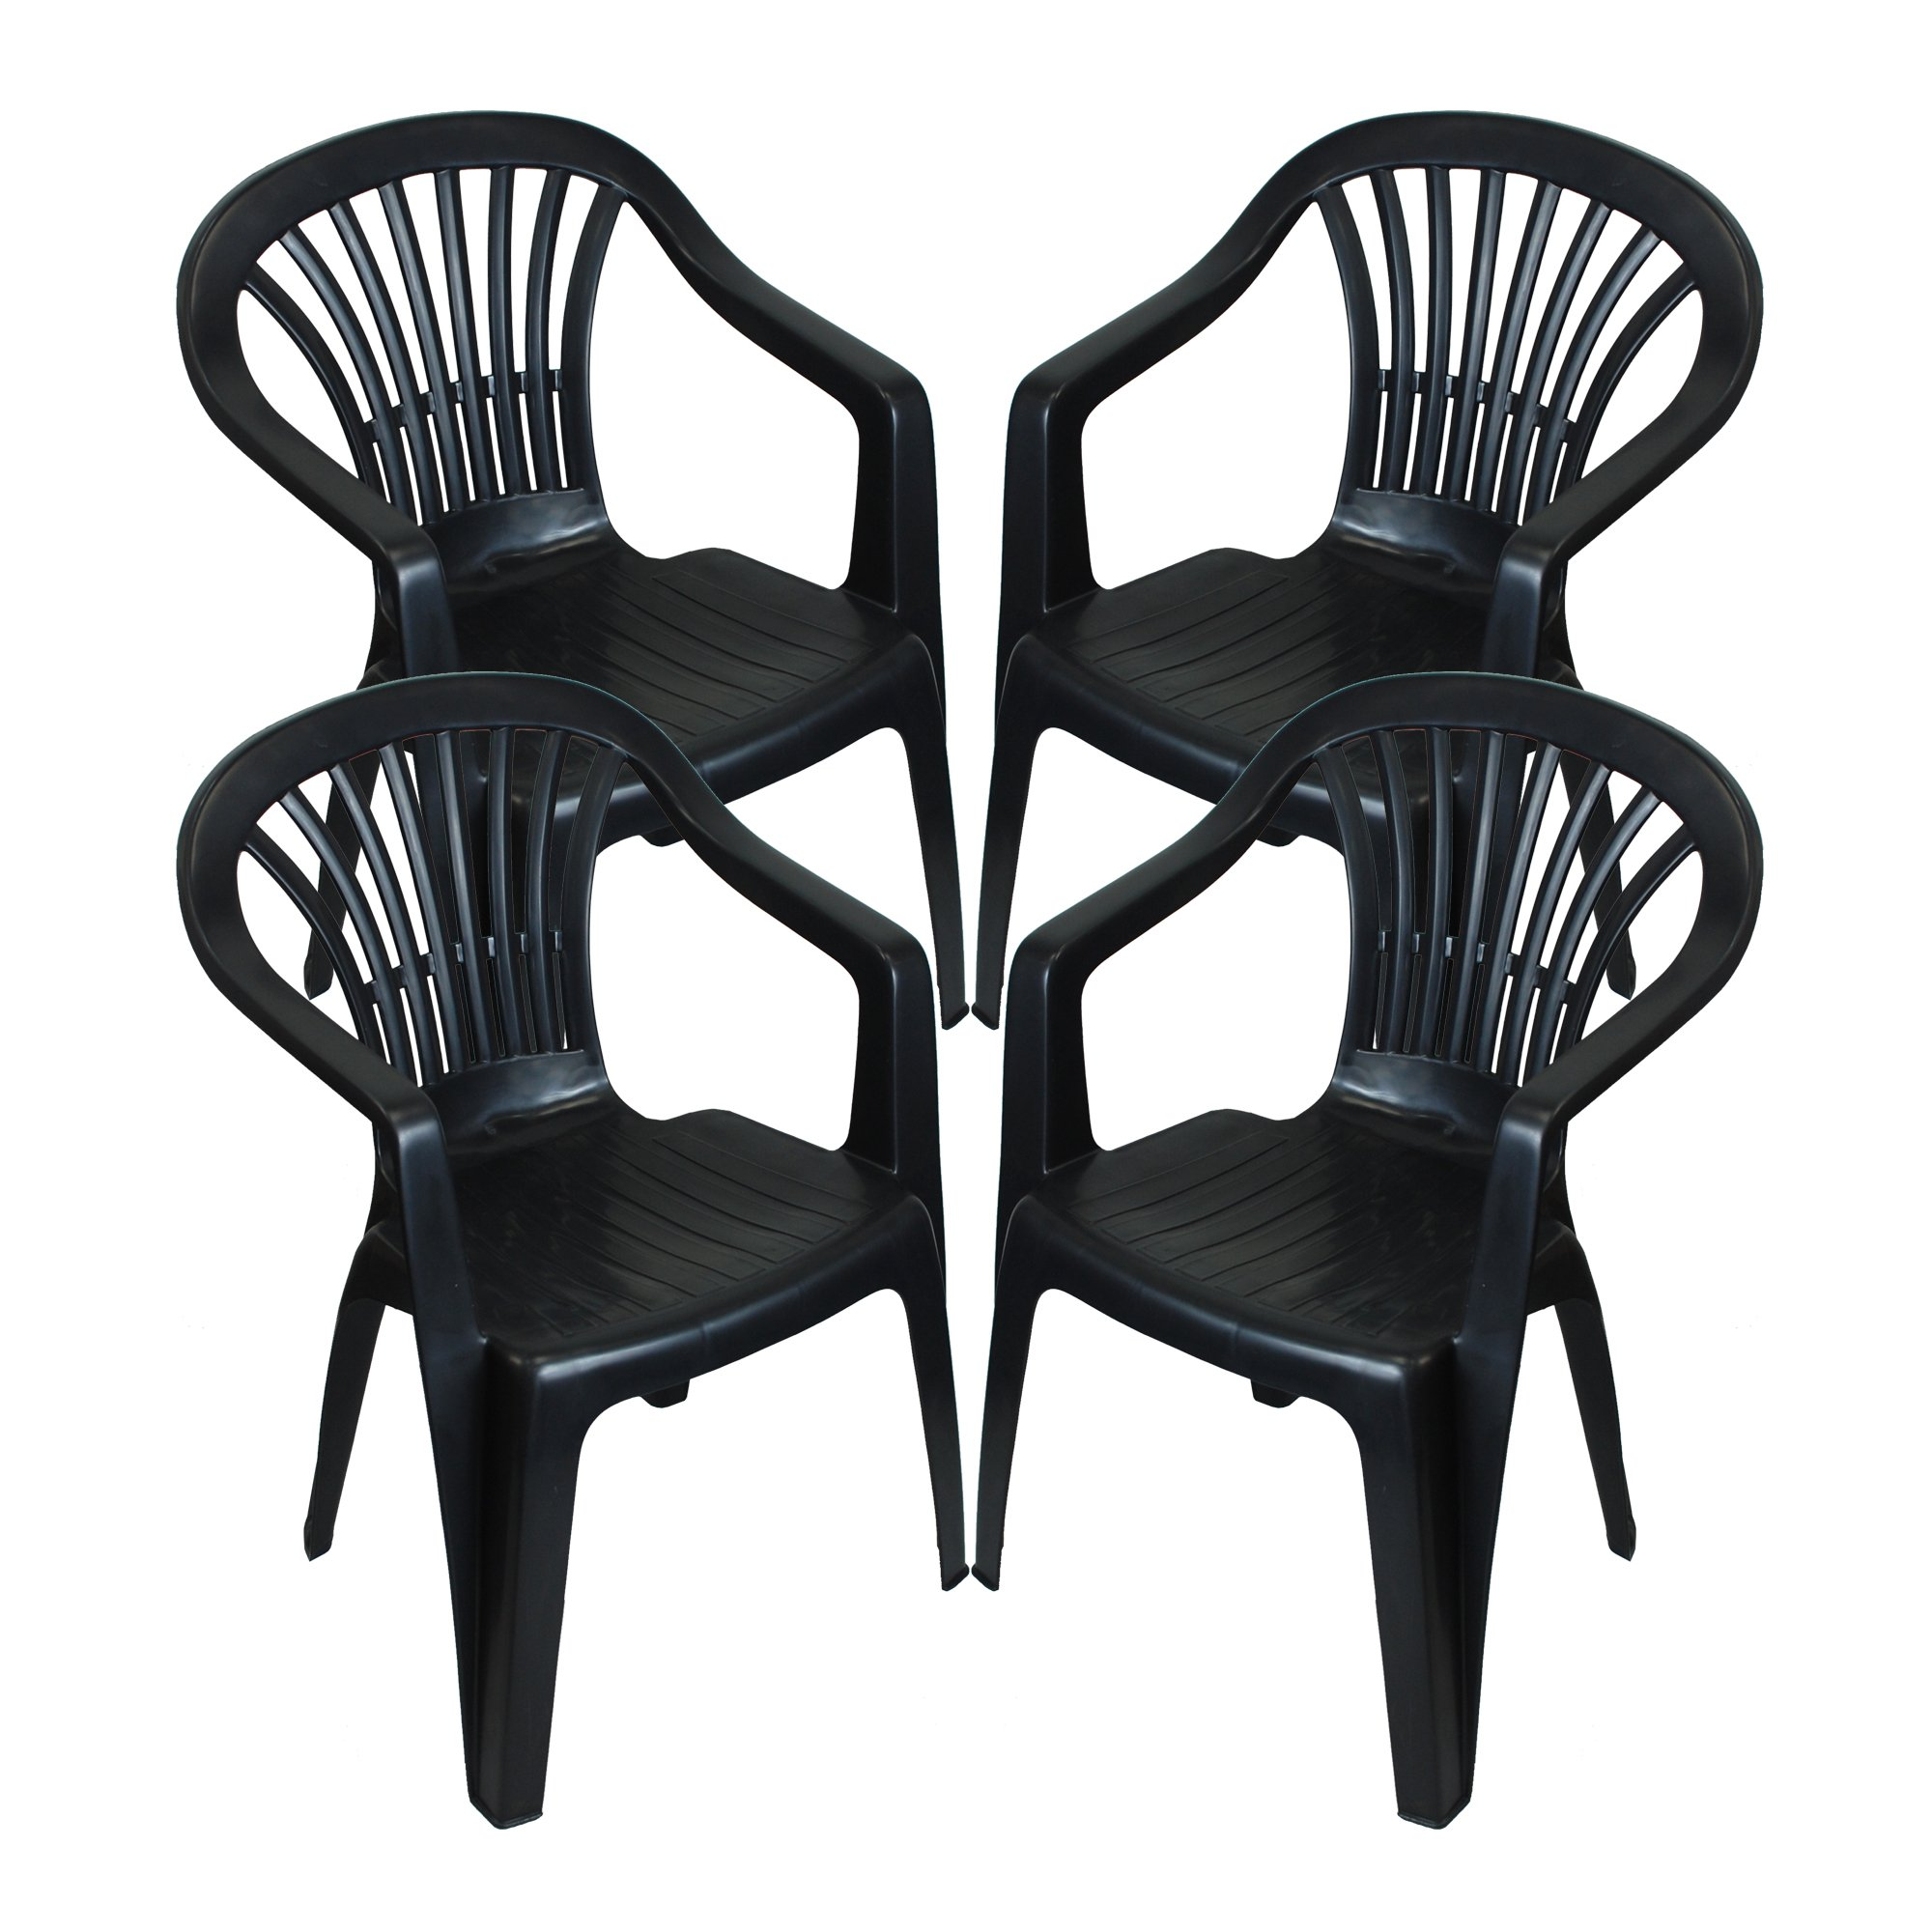 CrazyGadget Plastic Garden Low Back Chair Stackable Patio Outdoor Party  Seat Chairs Picnic Grey Pack of 8 (X8)